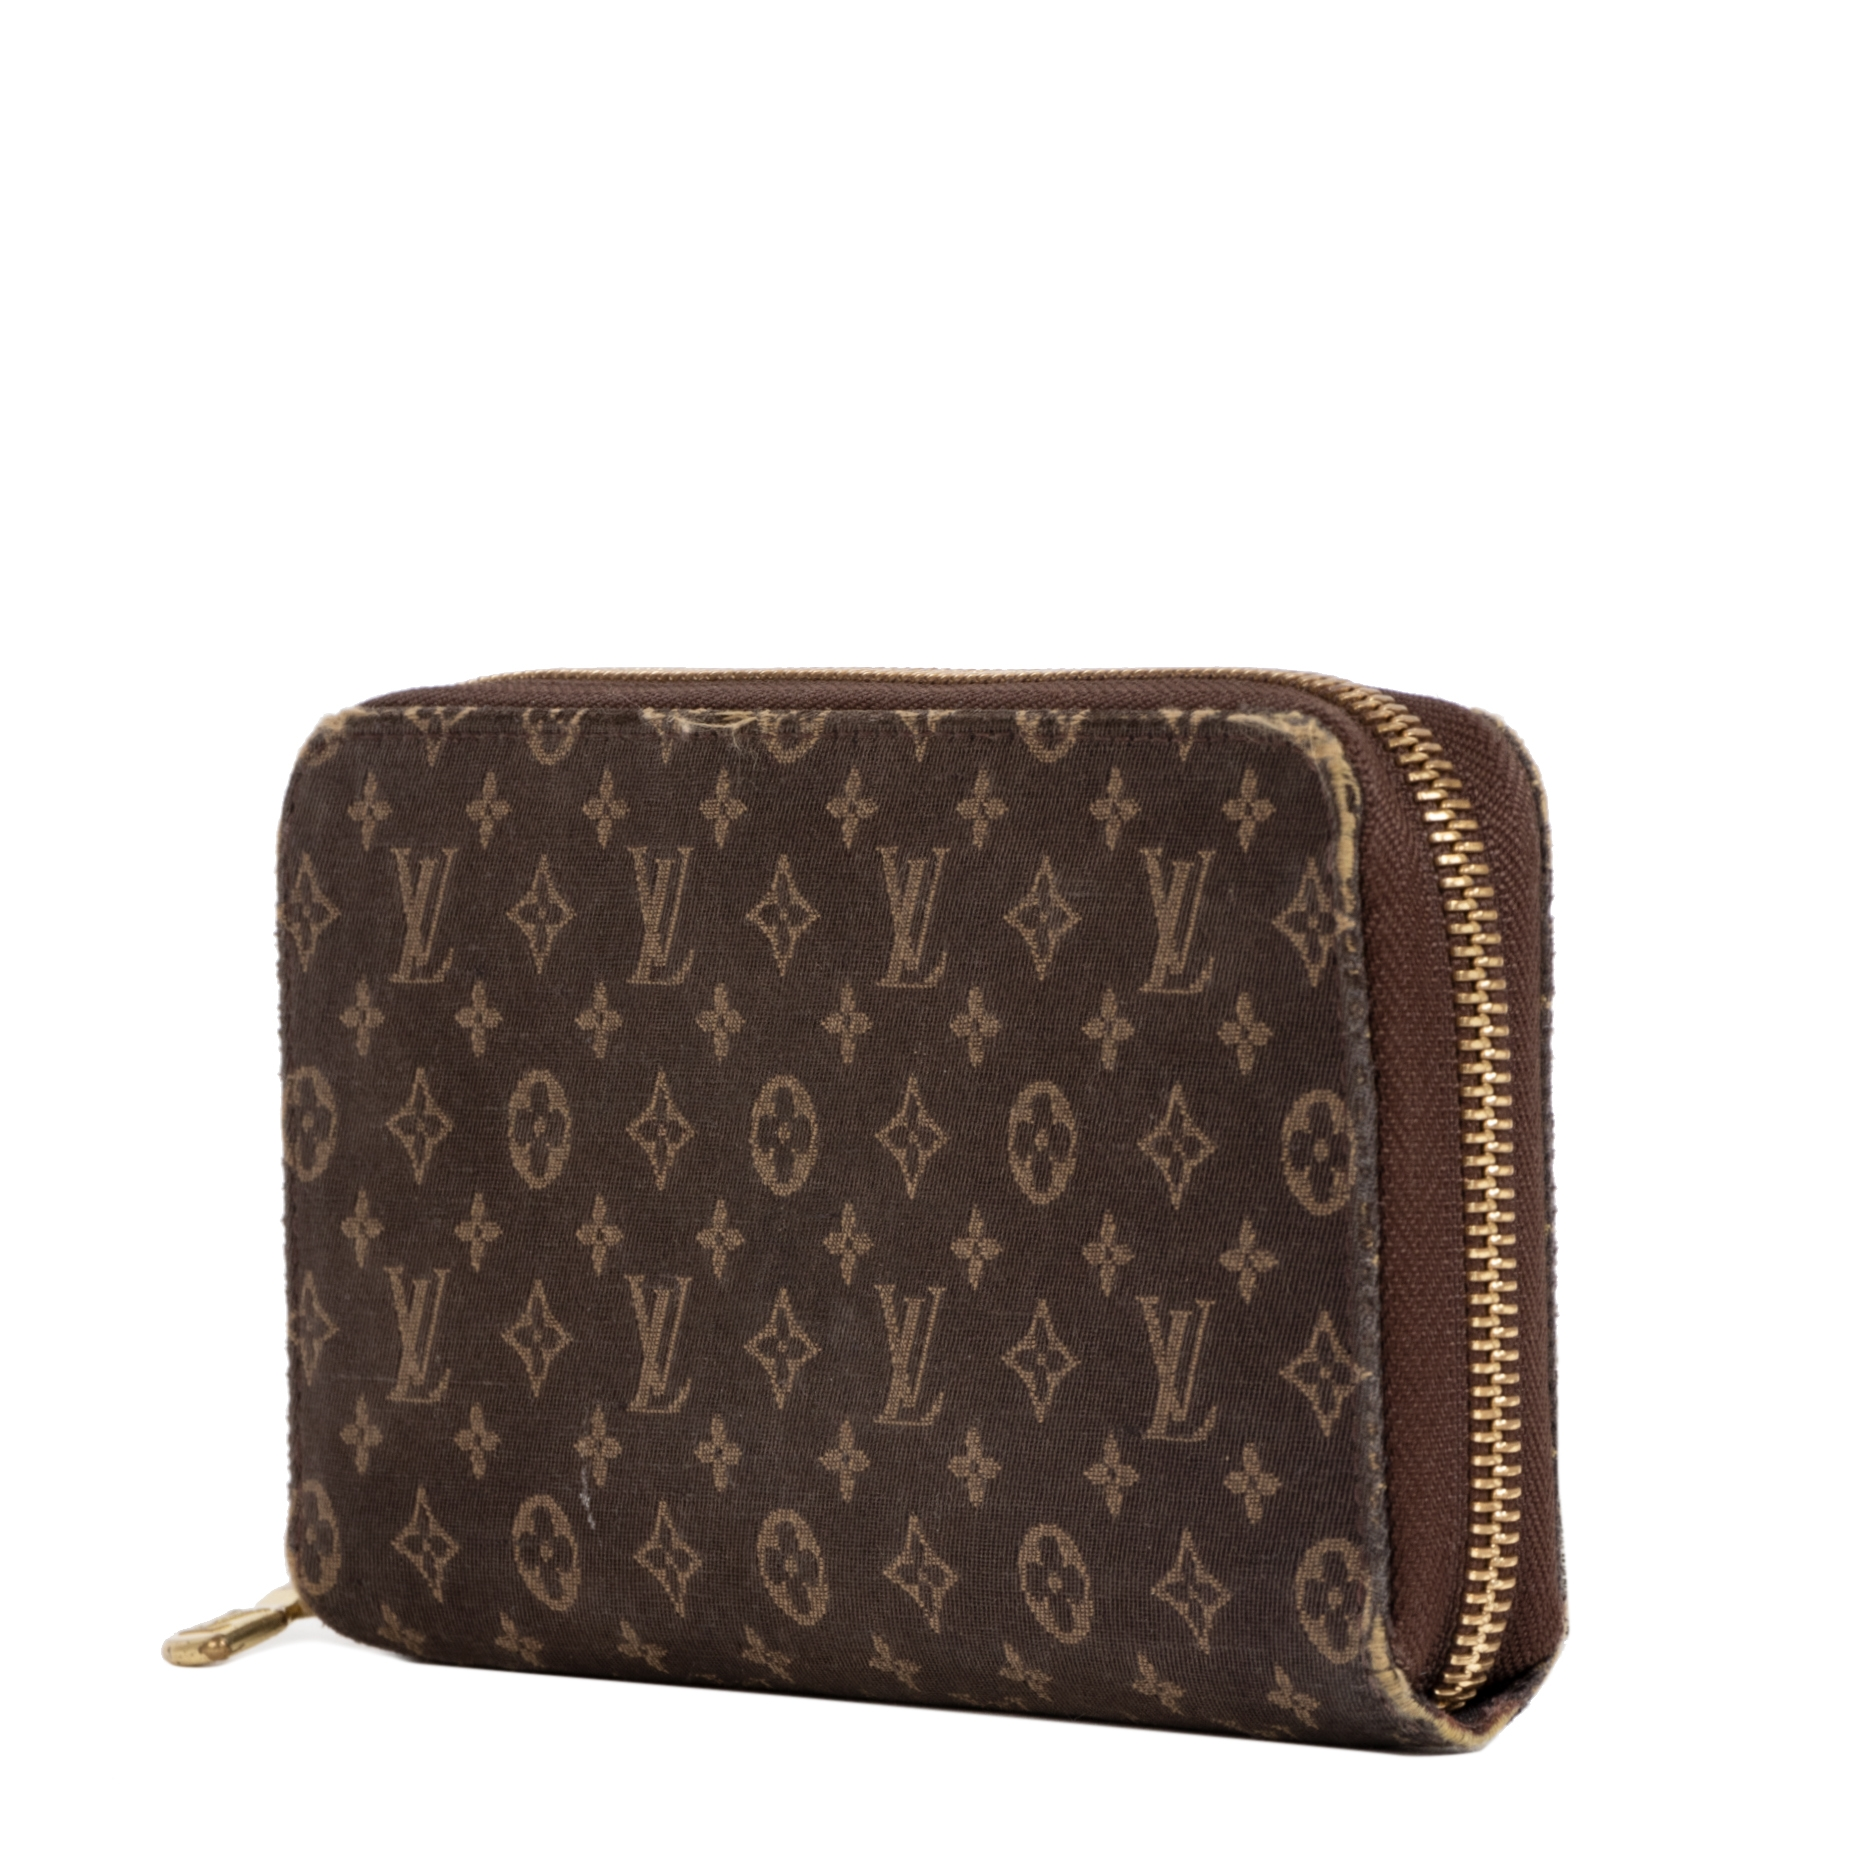 Louis Vuitton Mini Lin Brown Zippy Wallet pour le meilleur prix chez Labellov à Anvers